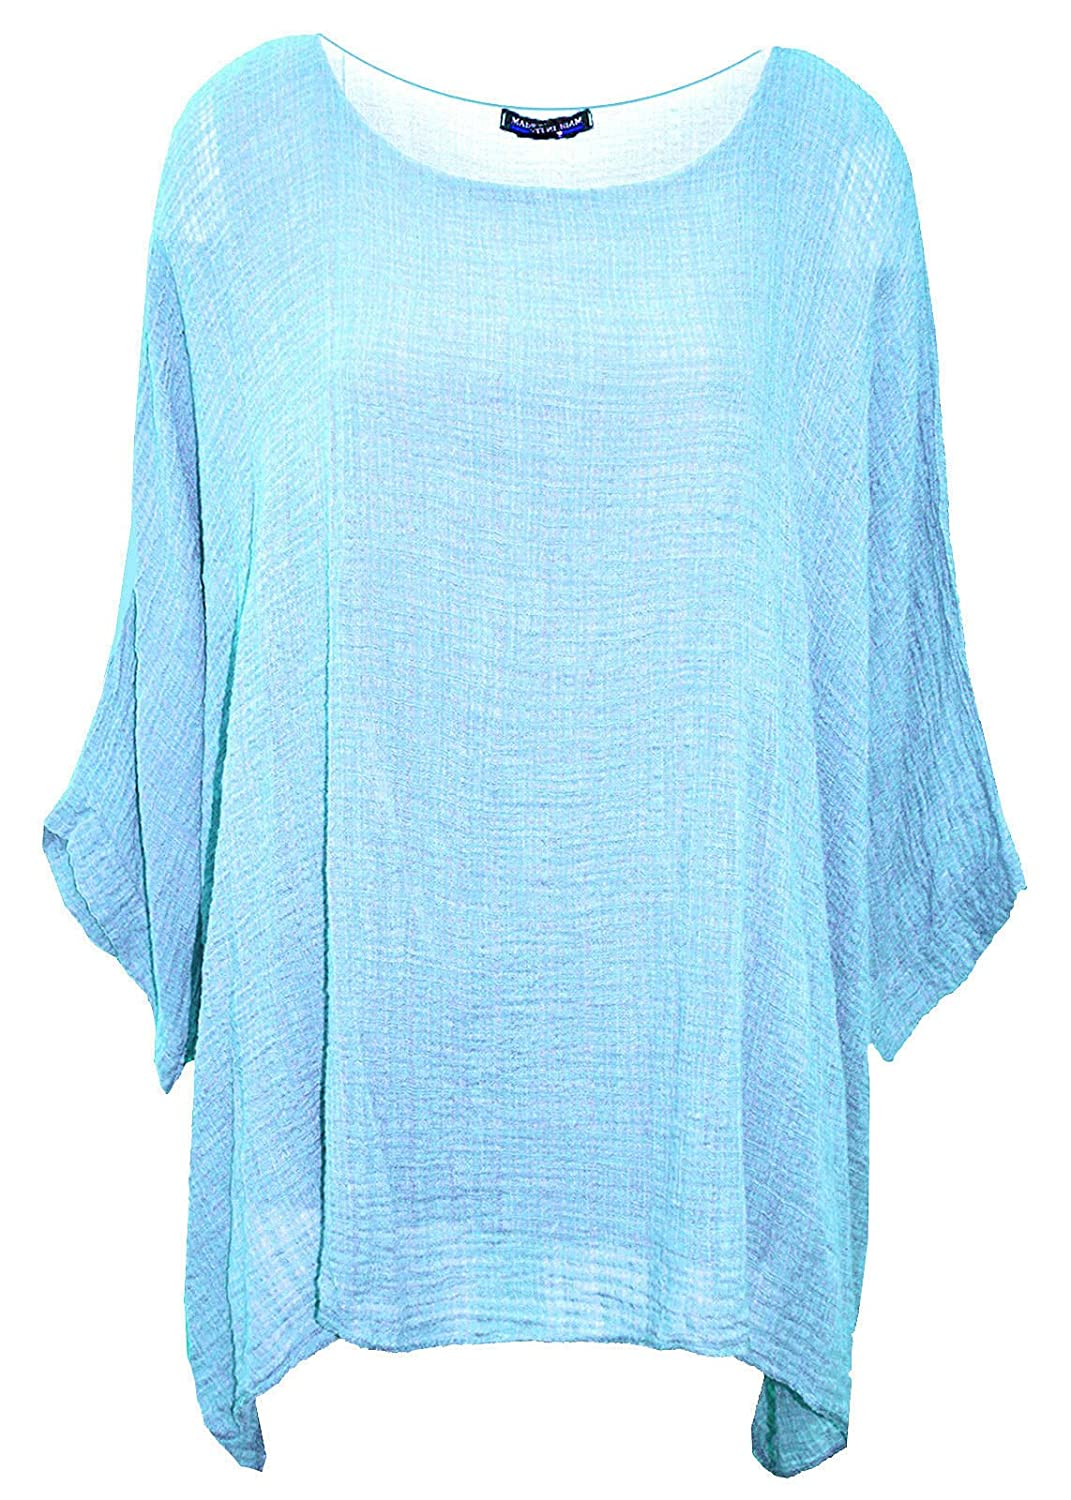 Crazy Girls Womens Ladies Plain Italian Cotton Loose Fit Batwing Lagenlook Kimono Top Plus Sizes UK 12-22